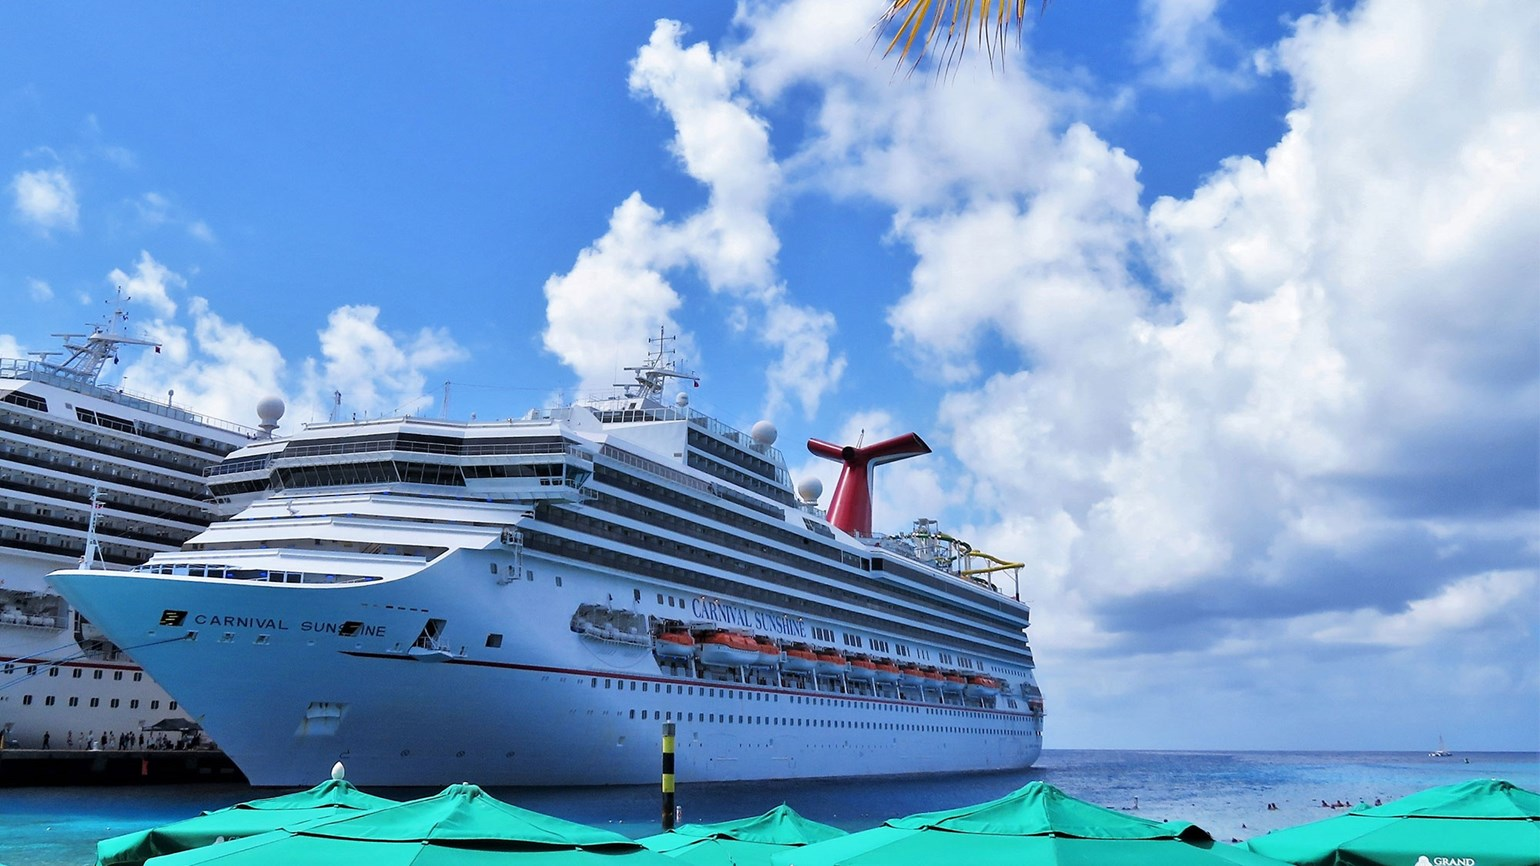 Carnival Sunshine in Grand Turk